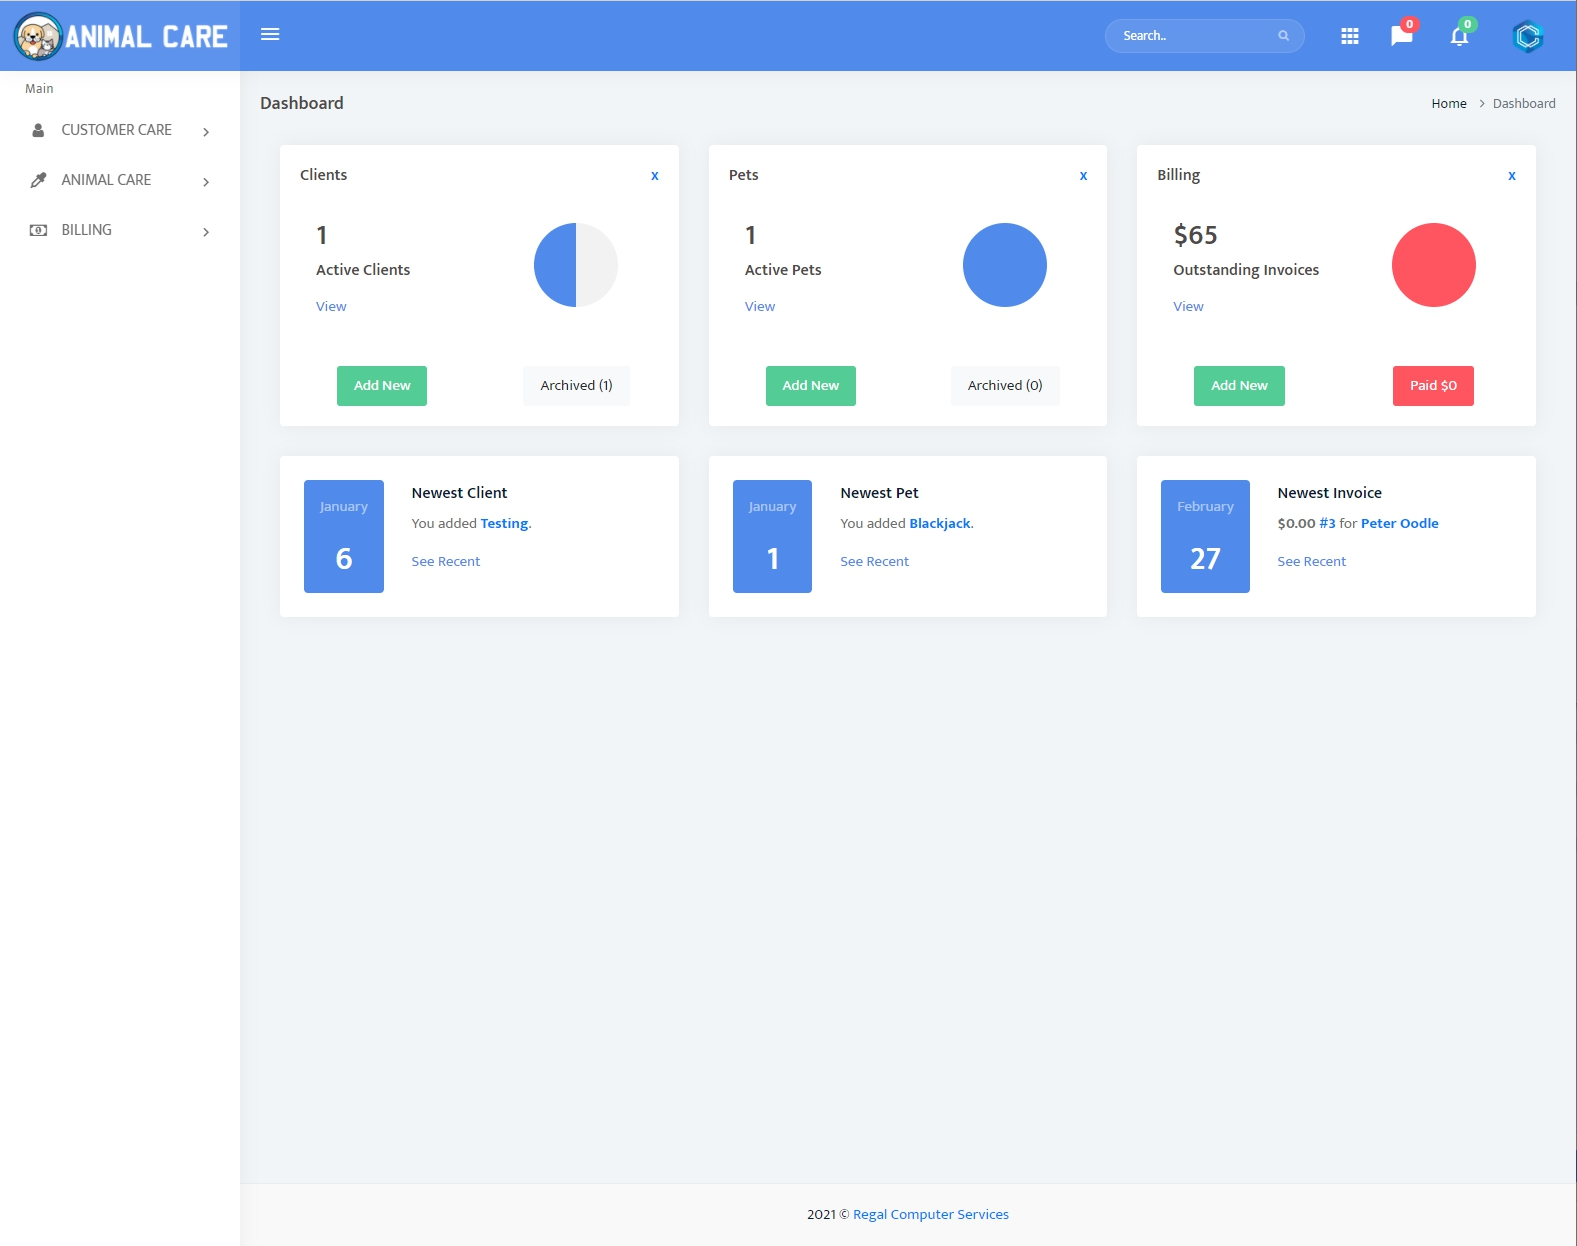 Dashboard with access to Main Features